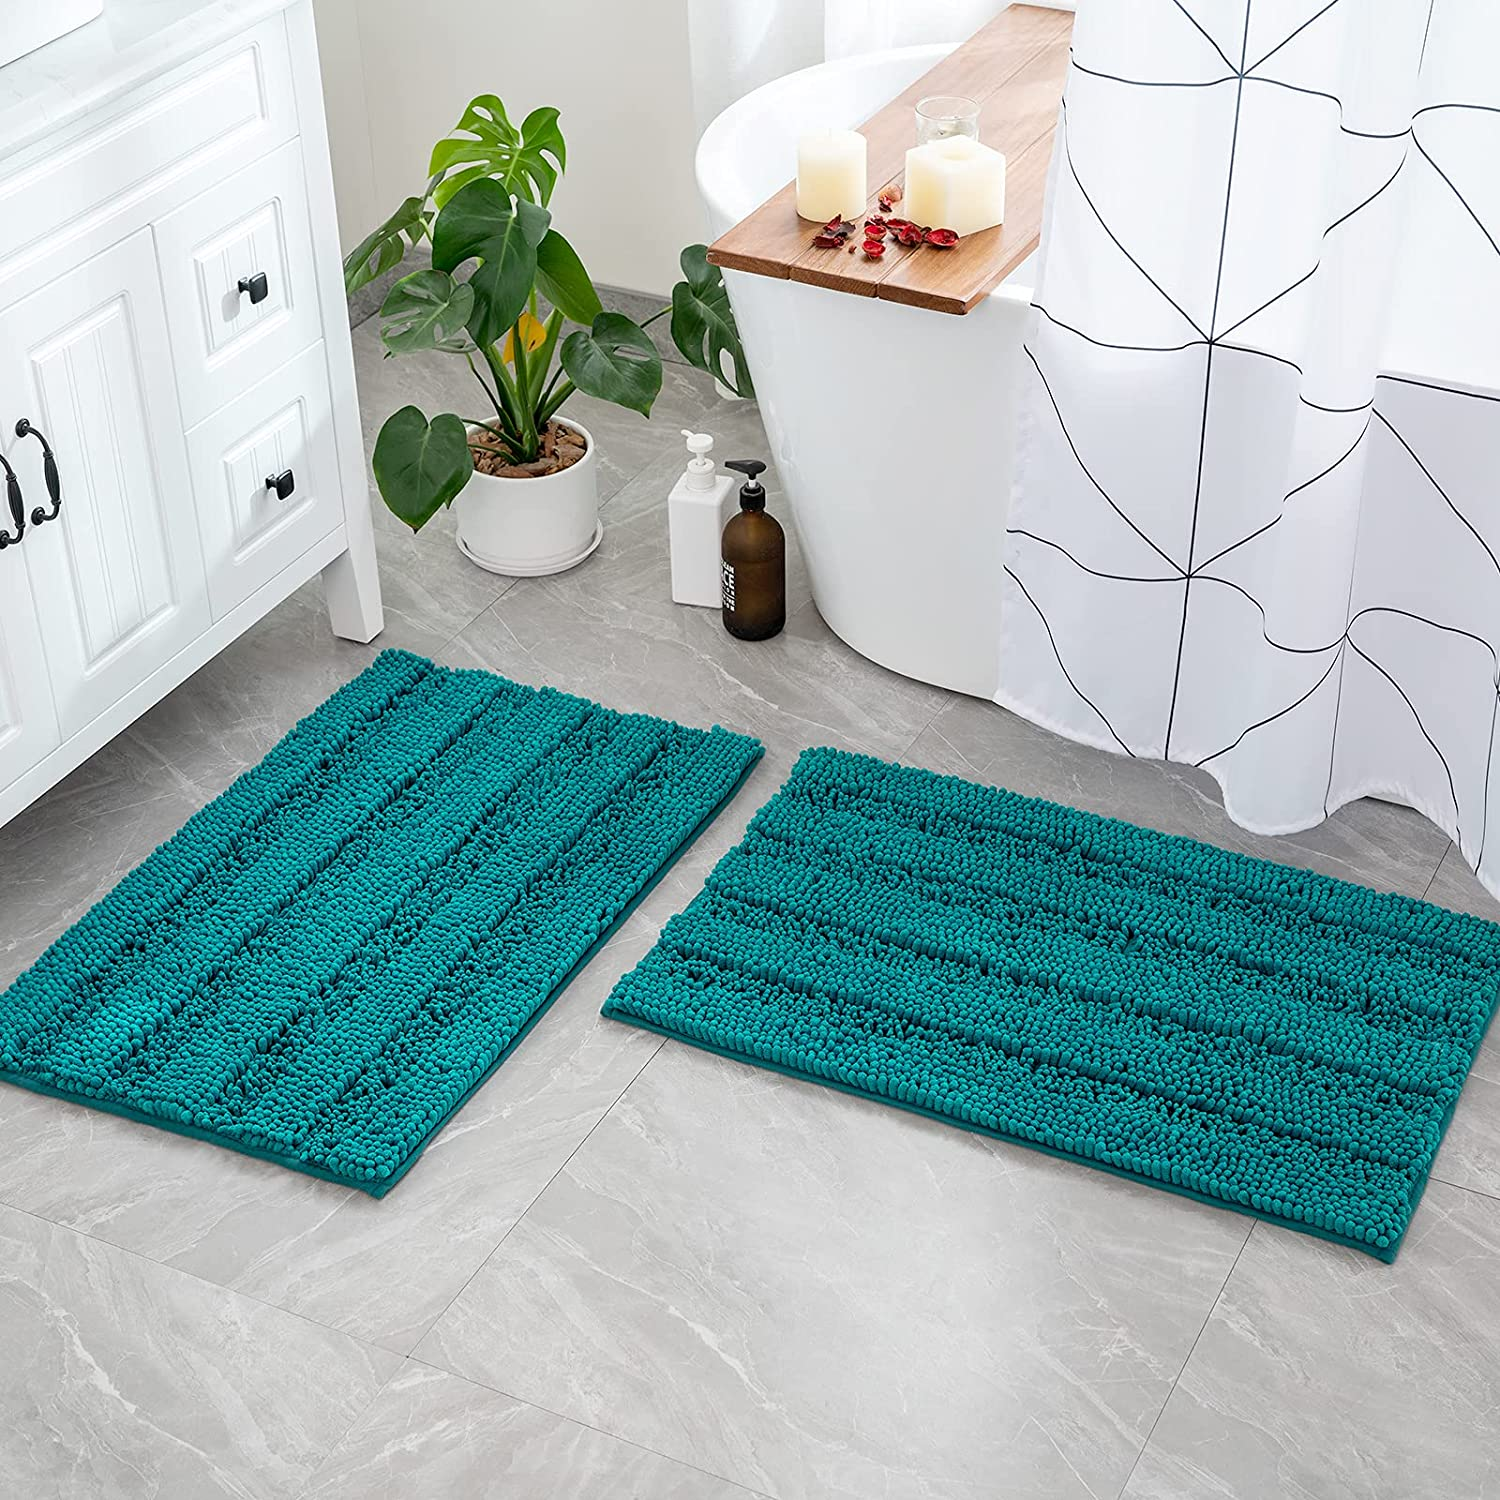 Mail order MIULEE Striped Bathroom Rugs and Mats Slip half Non Set 2 Soft Piece